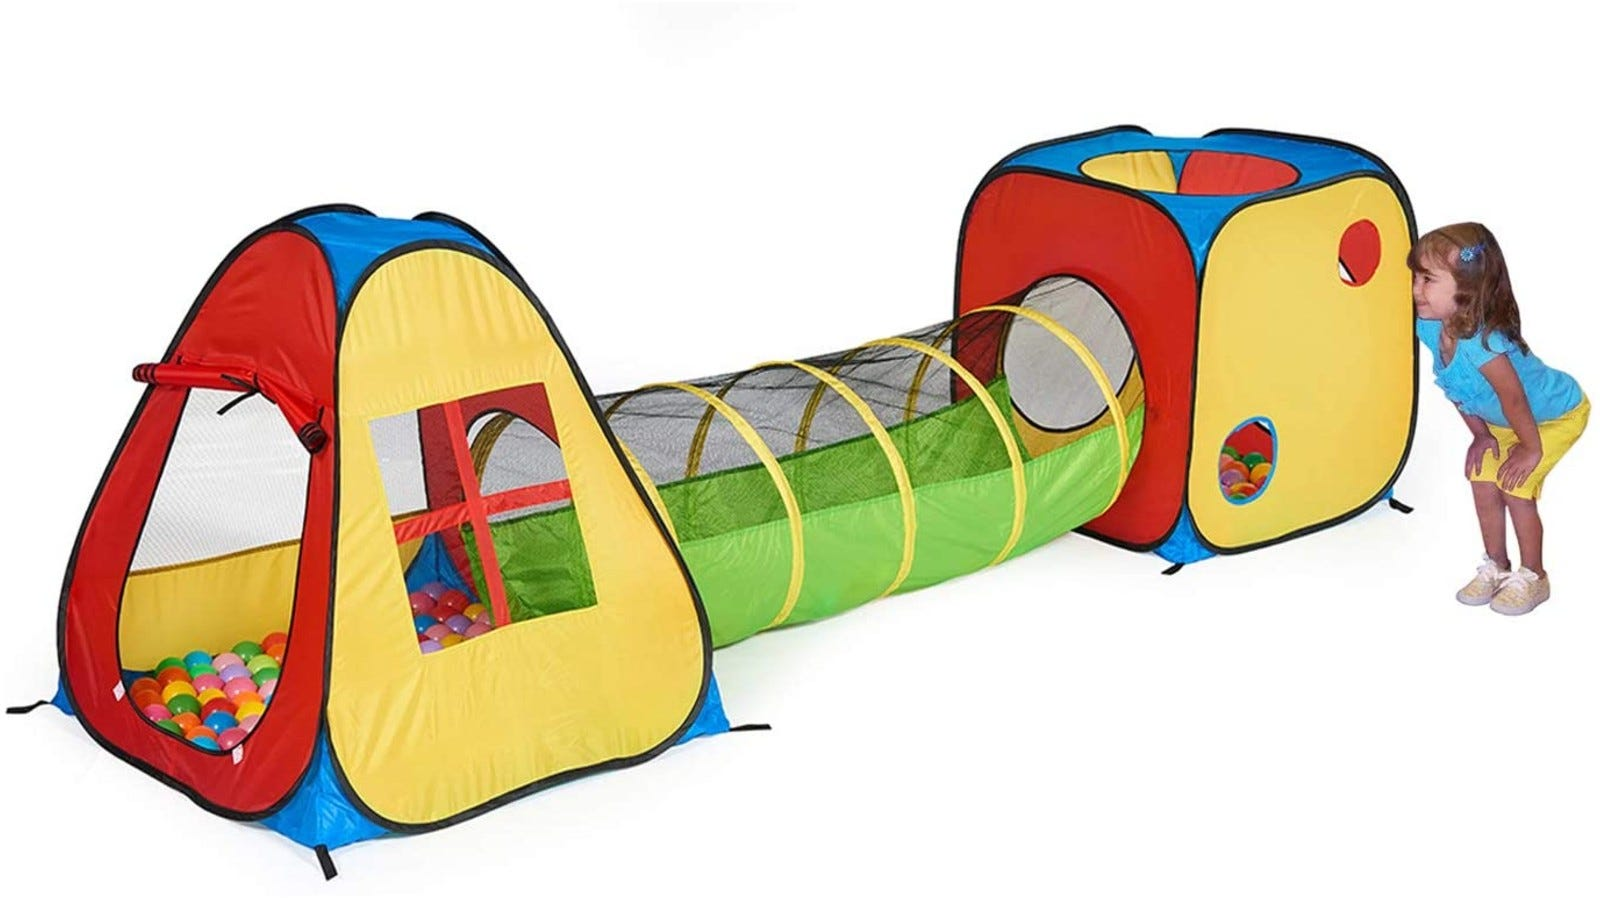 colorful play tent with a ball pit and a long tunnel with mesh windows